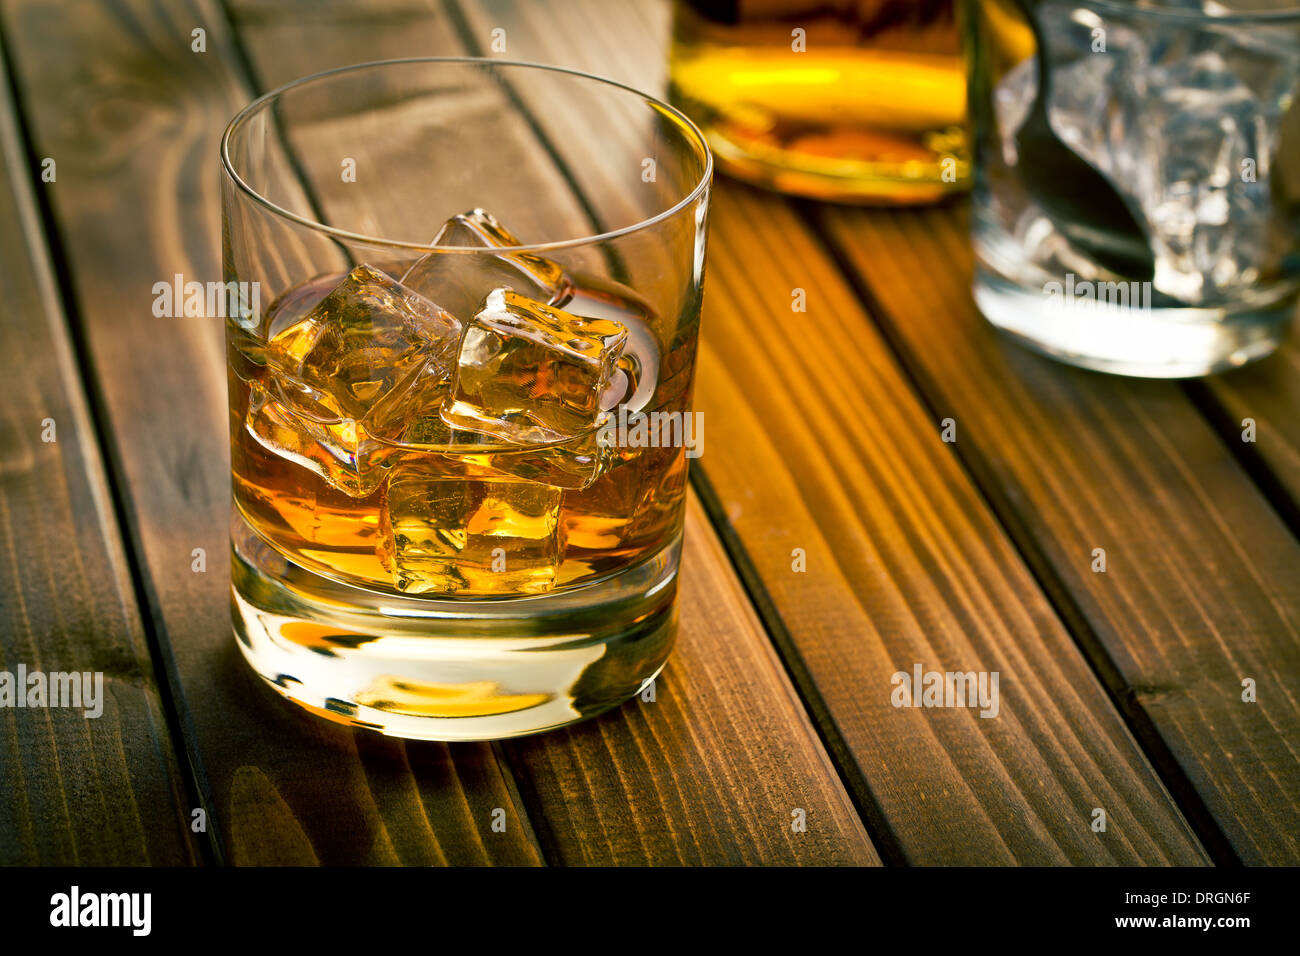 Wisky Glas Whisky Glass Stock Photos Whisky Glass Stock Images Alamy